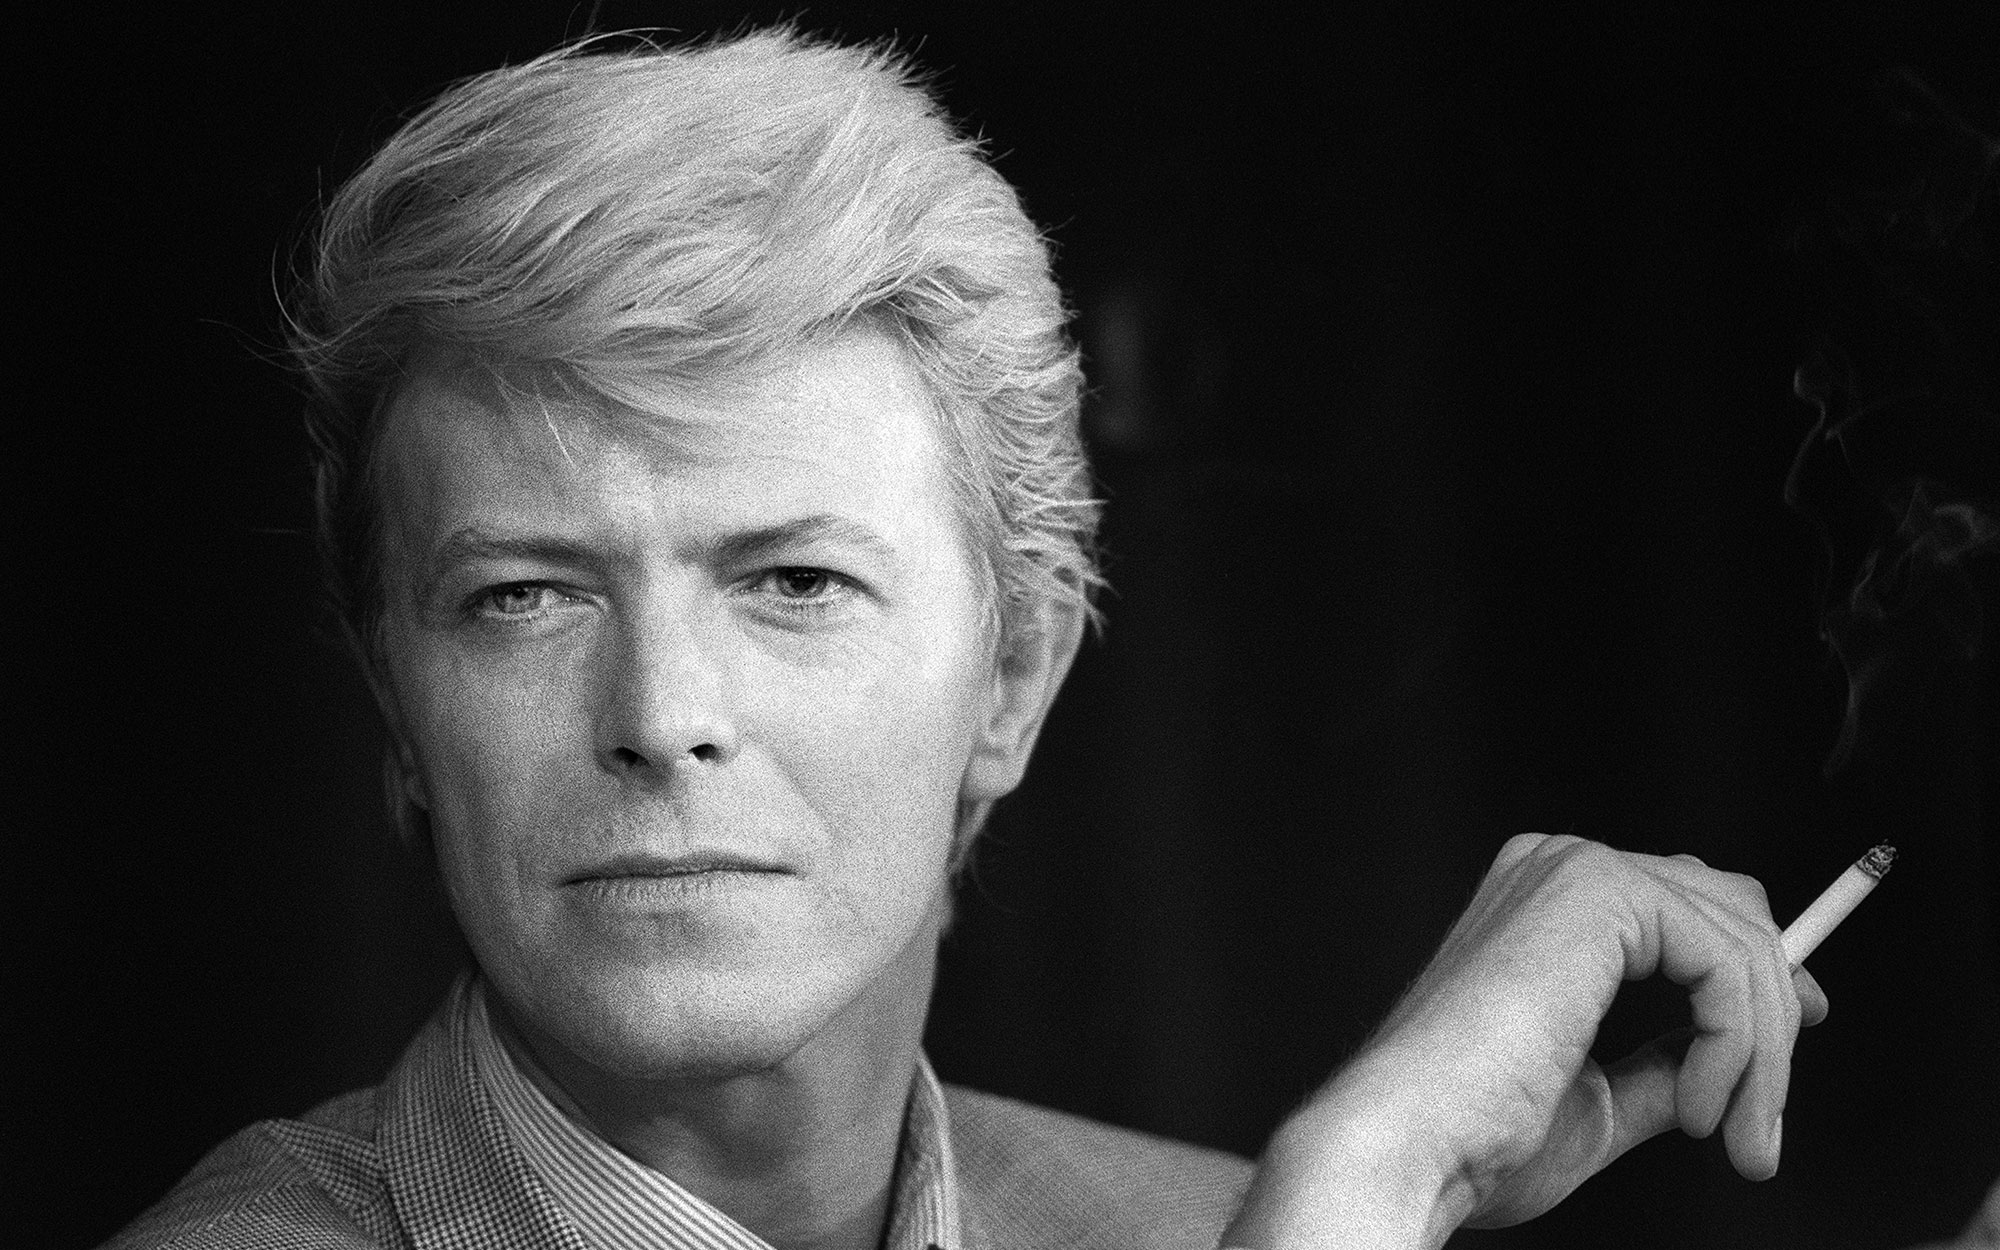 British Airways to Pay Tribute to David Bowie